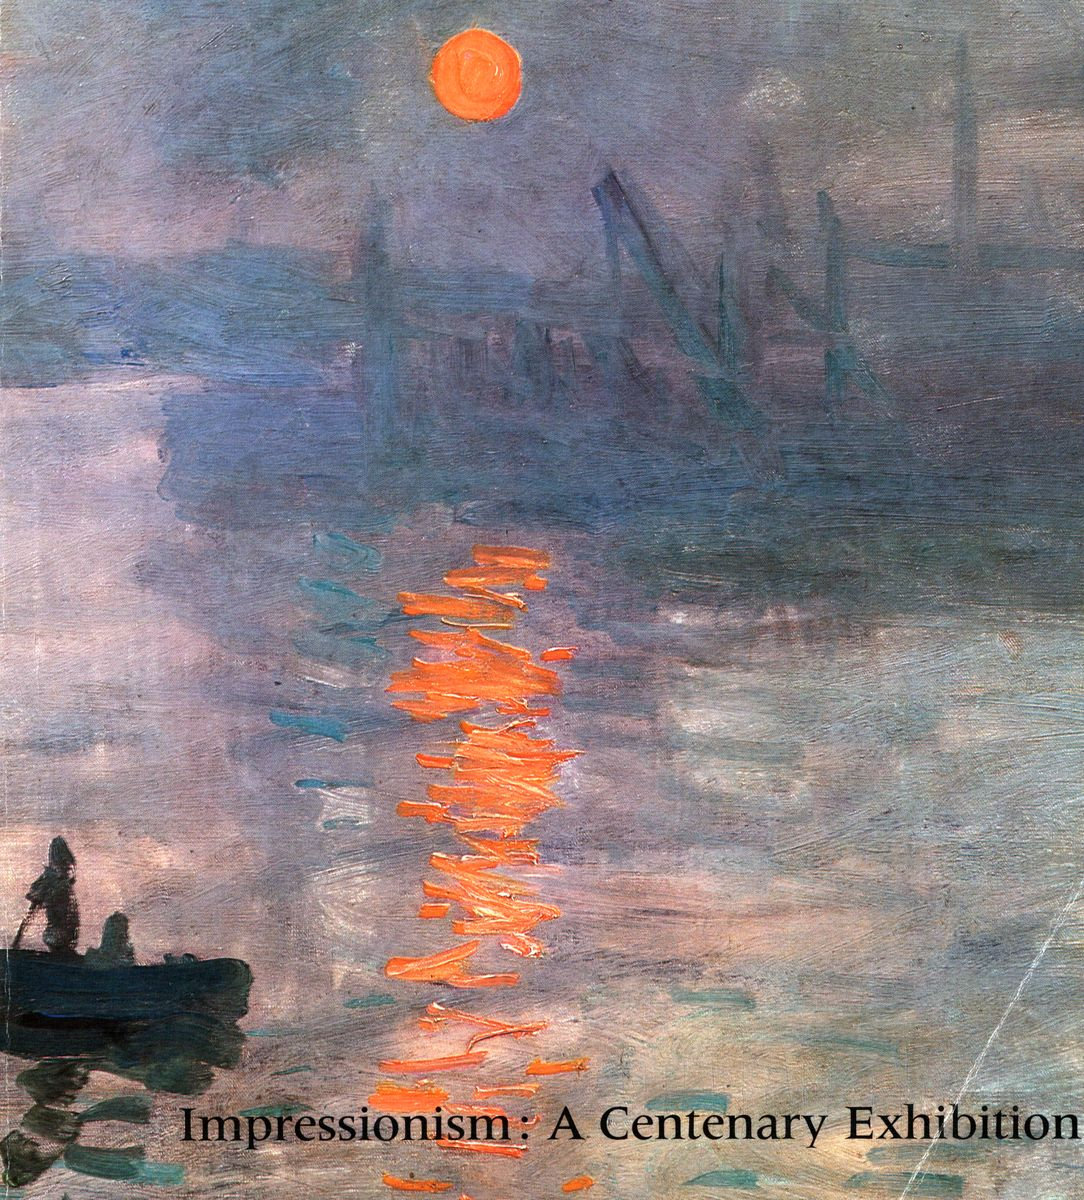 Impressionism_RT_: A centenary exhibition, the Metropolitan Museum of Art, December 12, 1974-February 10, 1975 по 419.00 руб от изд. The Museum of Modern Art, New York